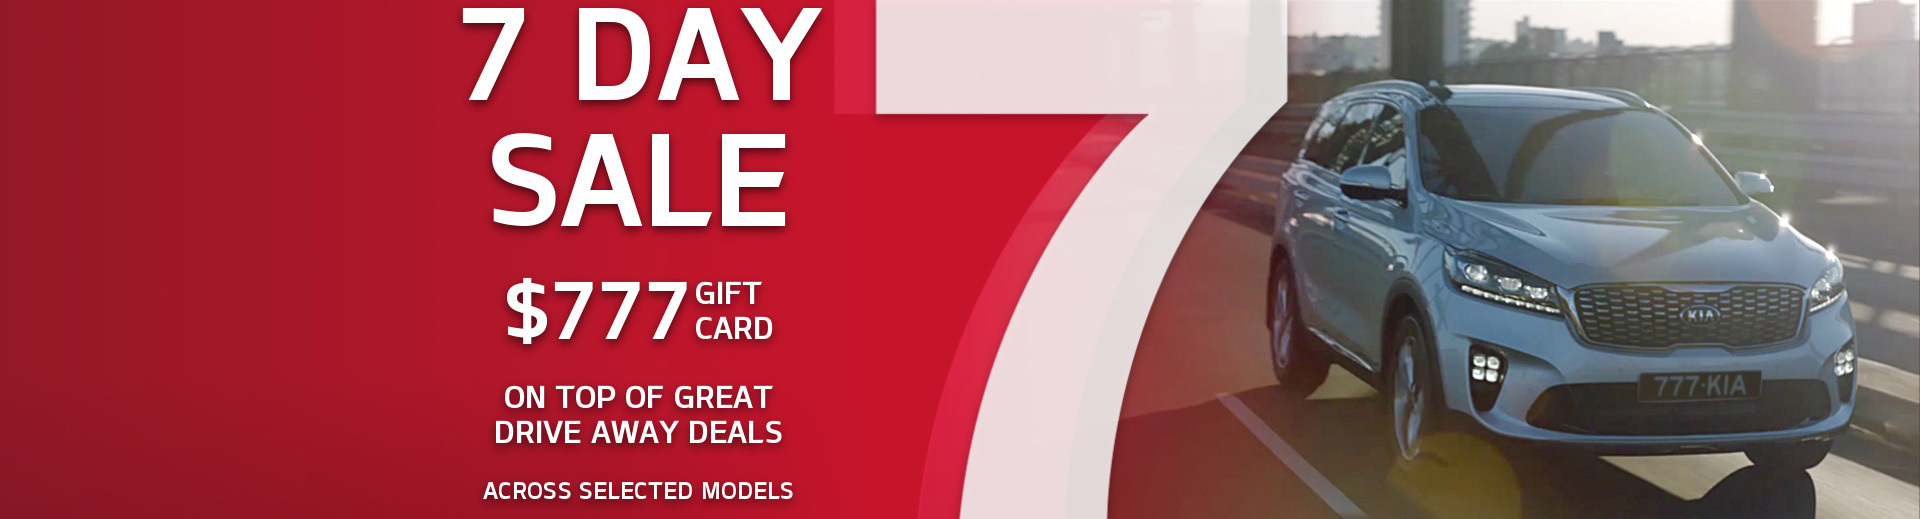 Kia - National Offer - 7 Day Sale $777 Gift Card